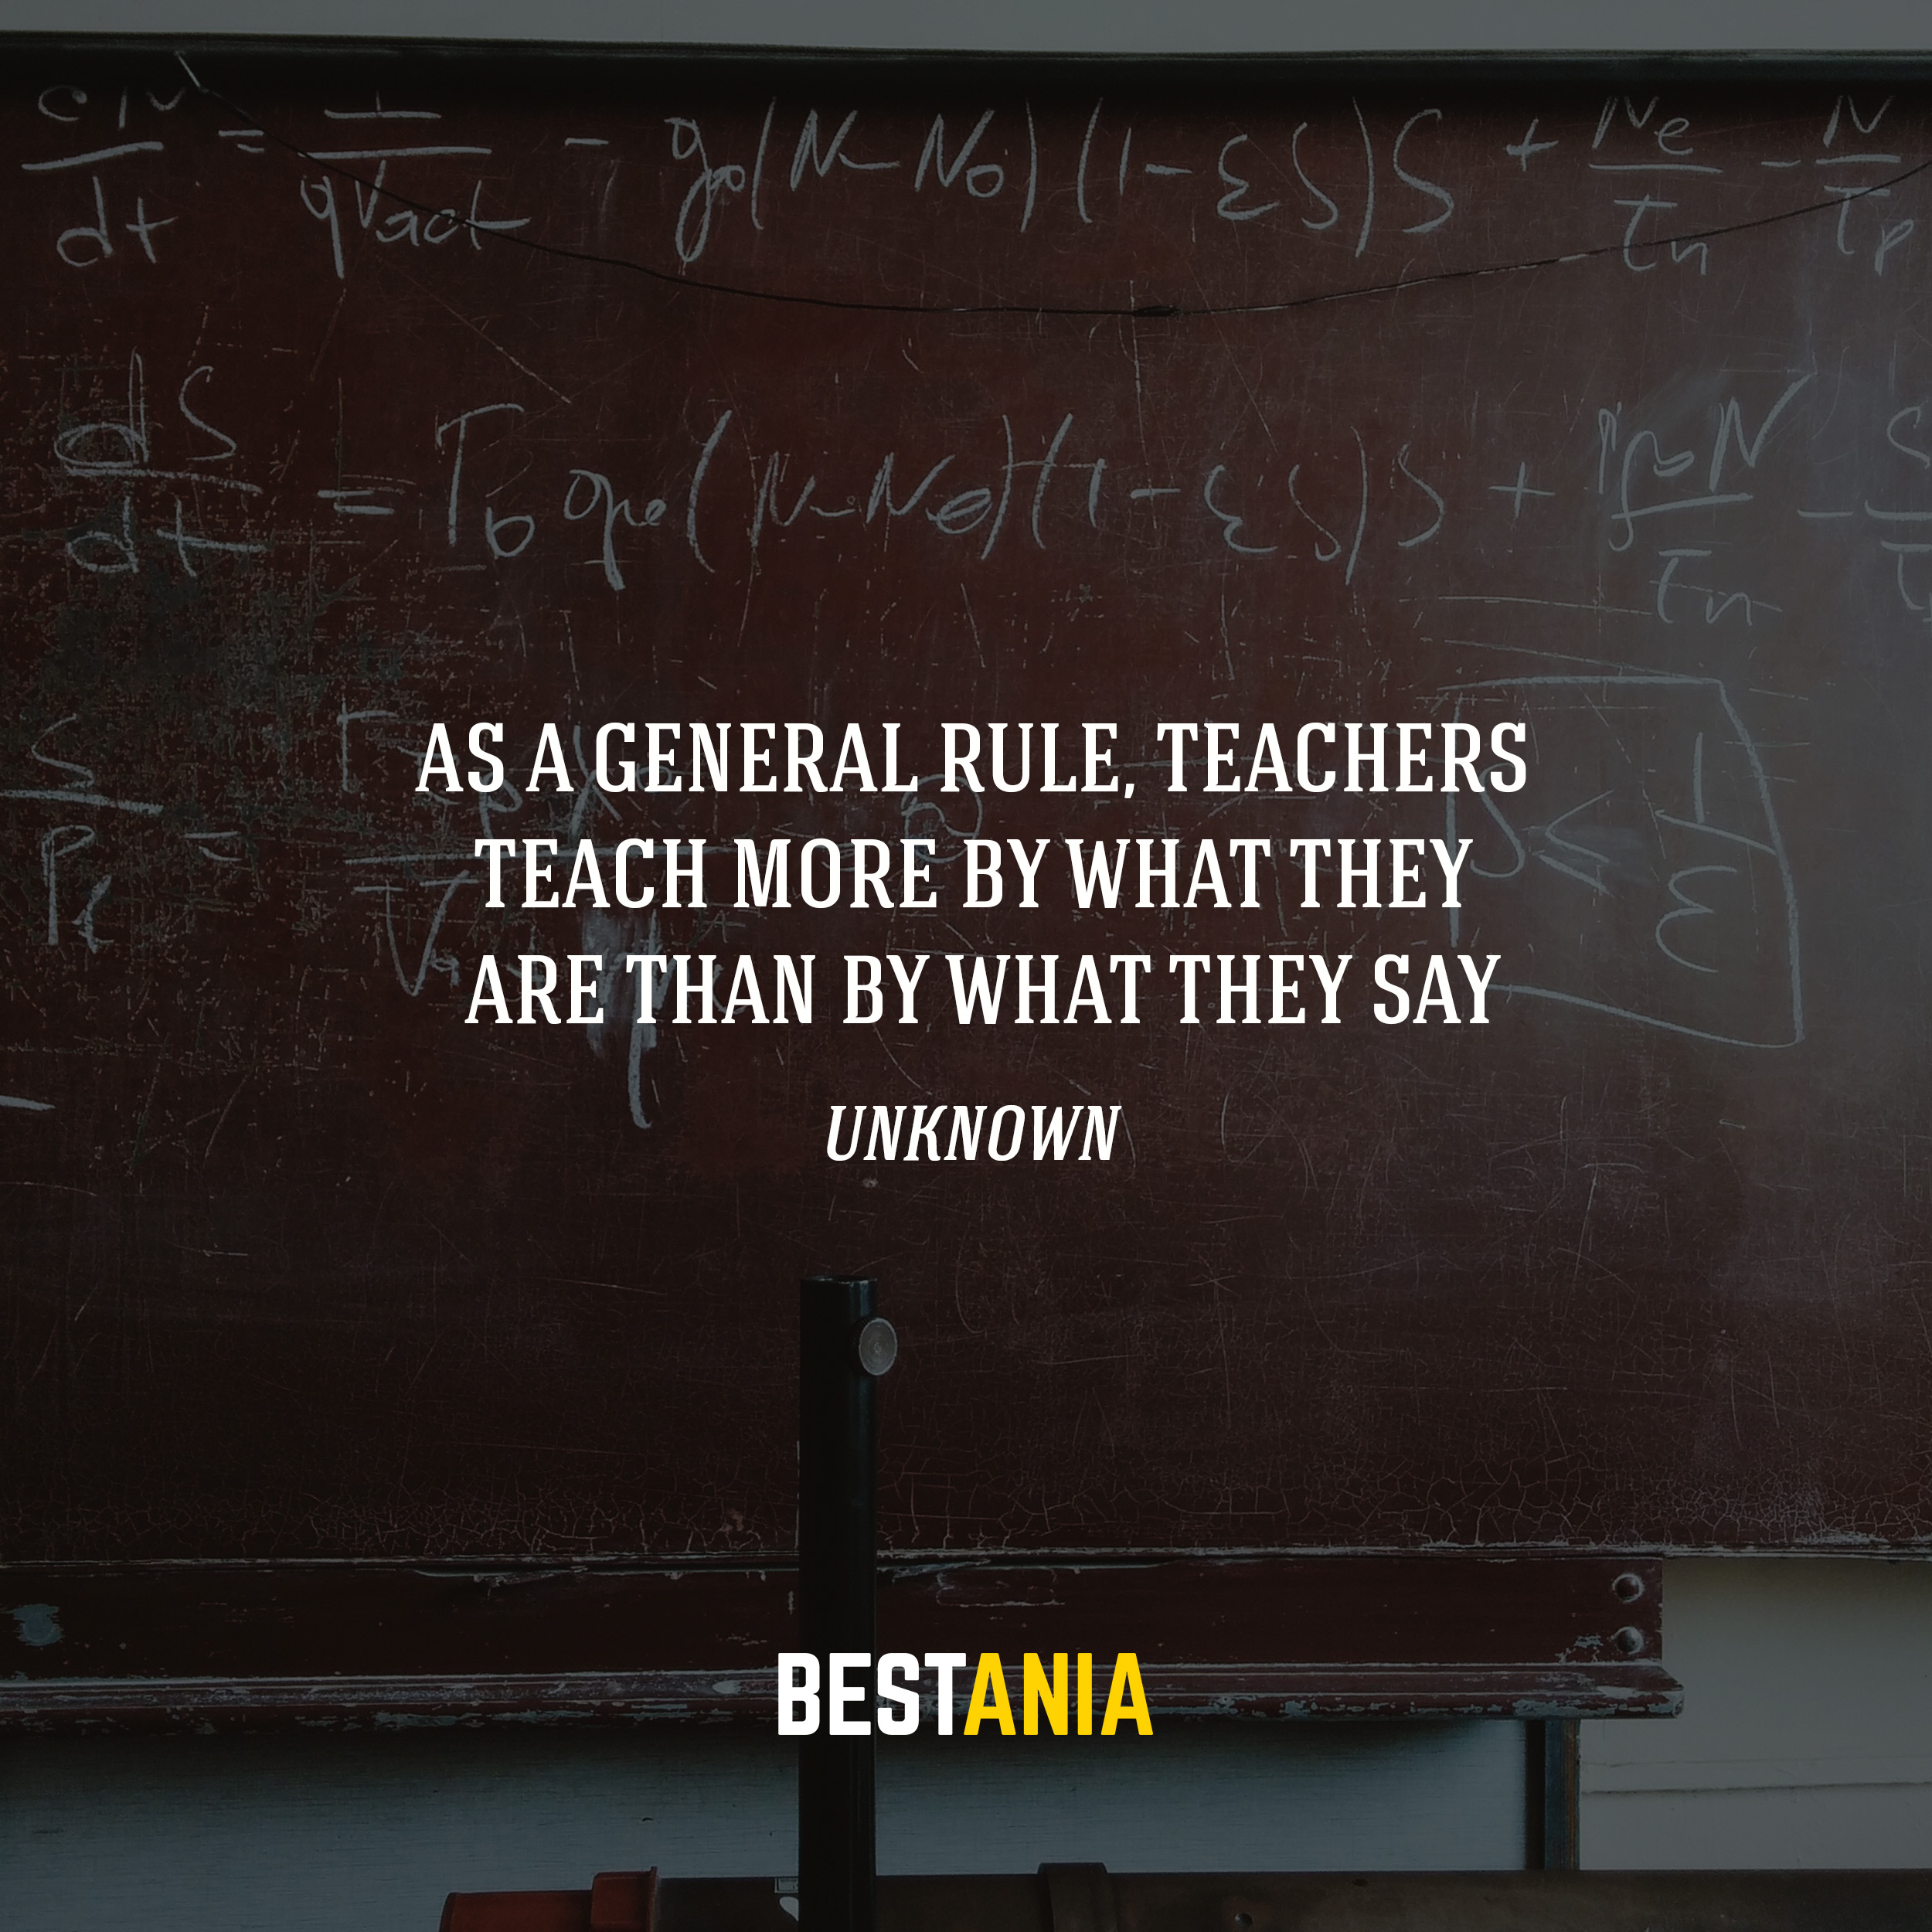 As a general rule, teachers teach more by what they are than by what they say. Unknown